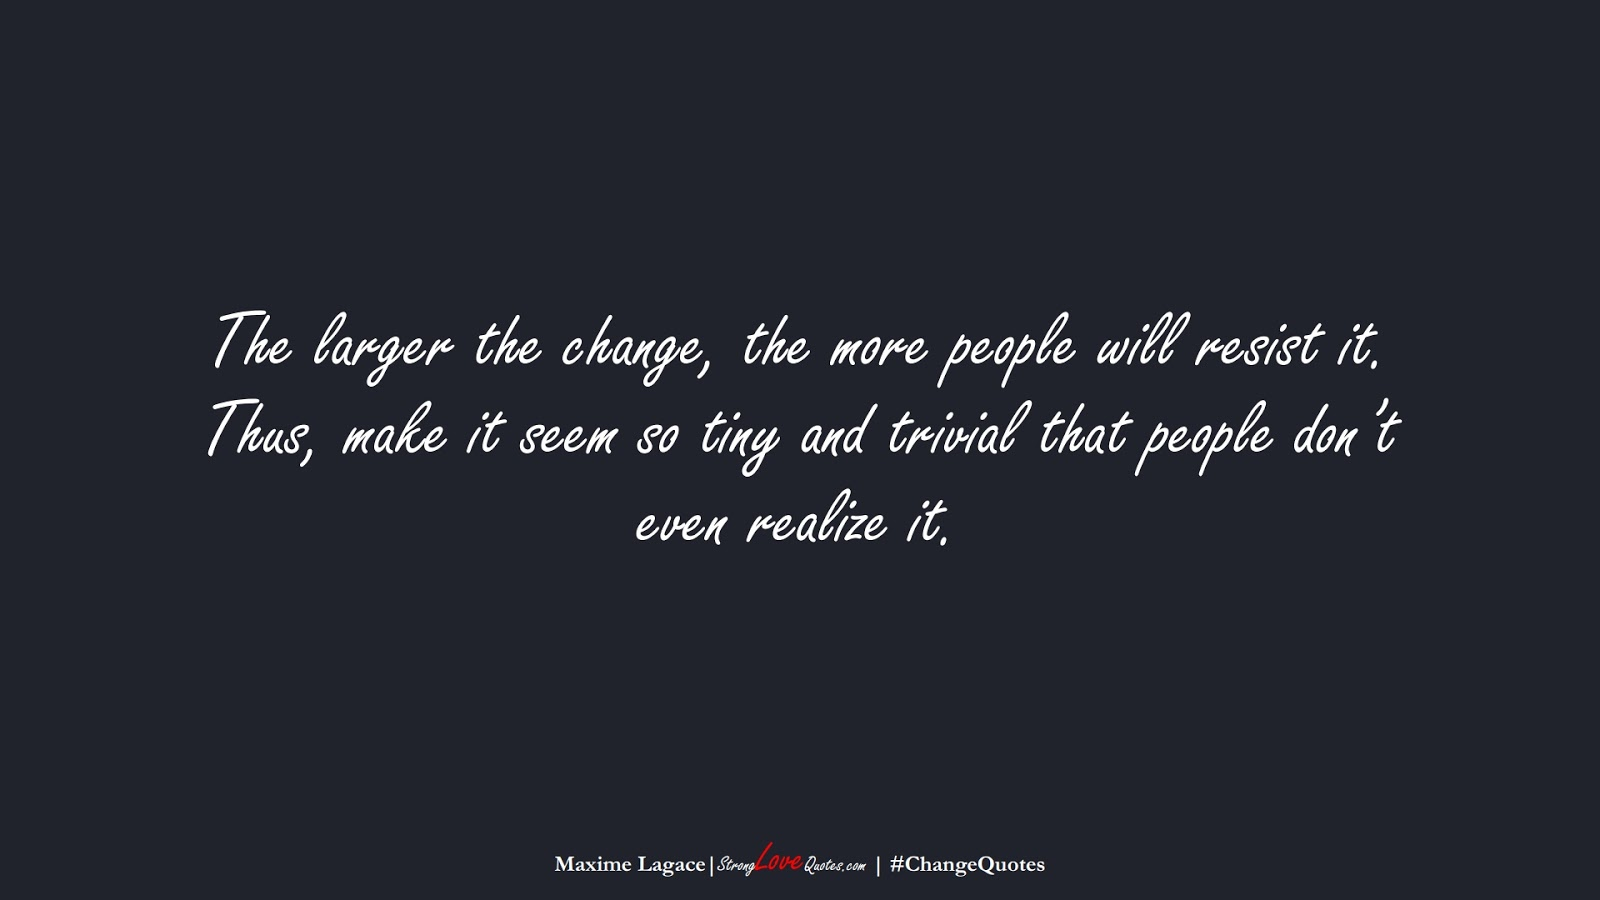 The larger the change, the more people will resist it. Thus, make it seem so tiny and trivial that people don't even realize it. (Maxime Lagace);  #ChangeQuotes